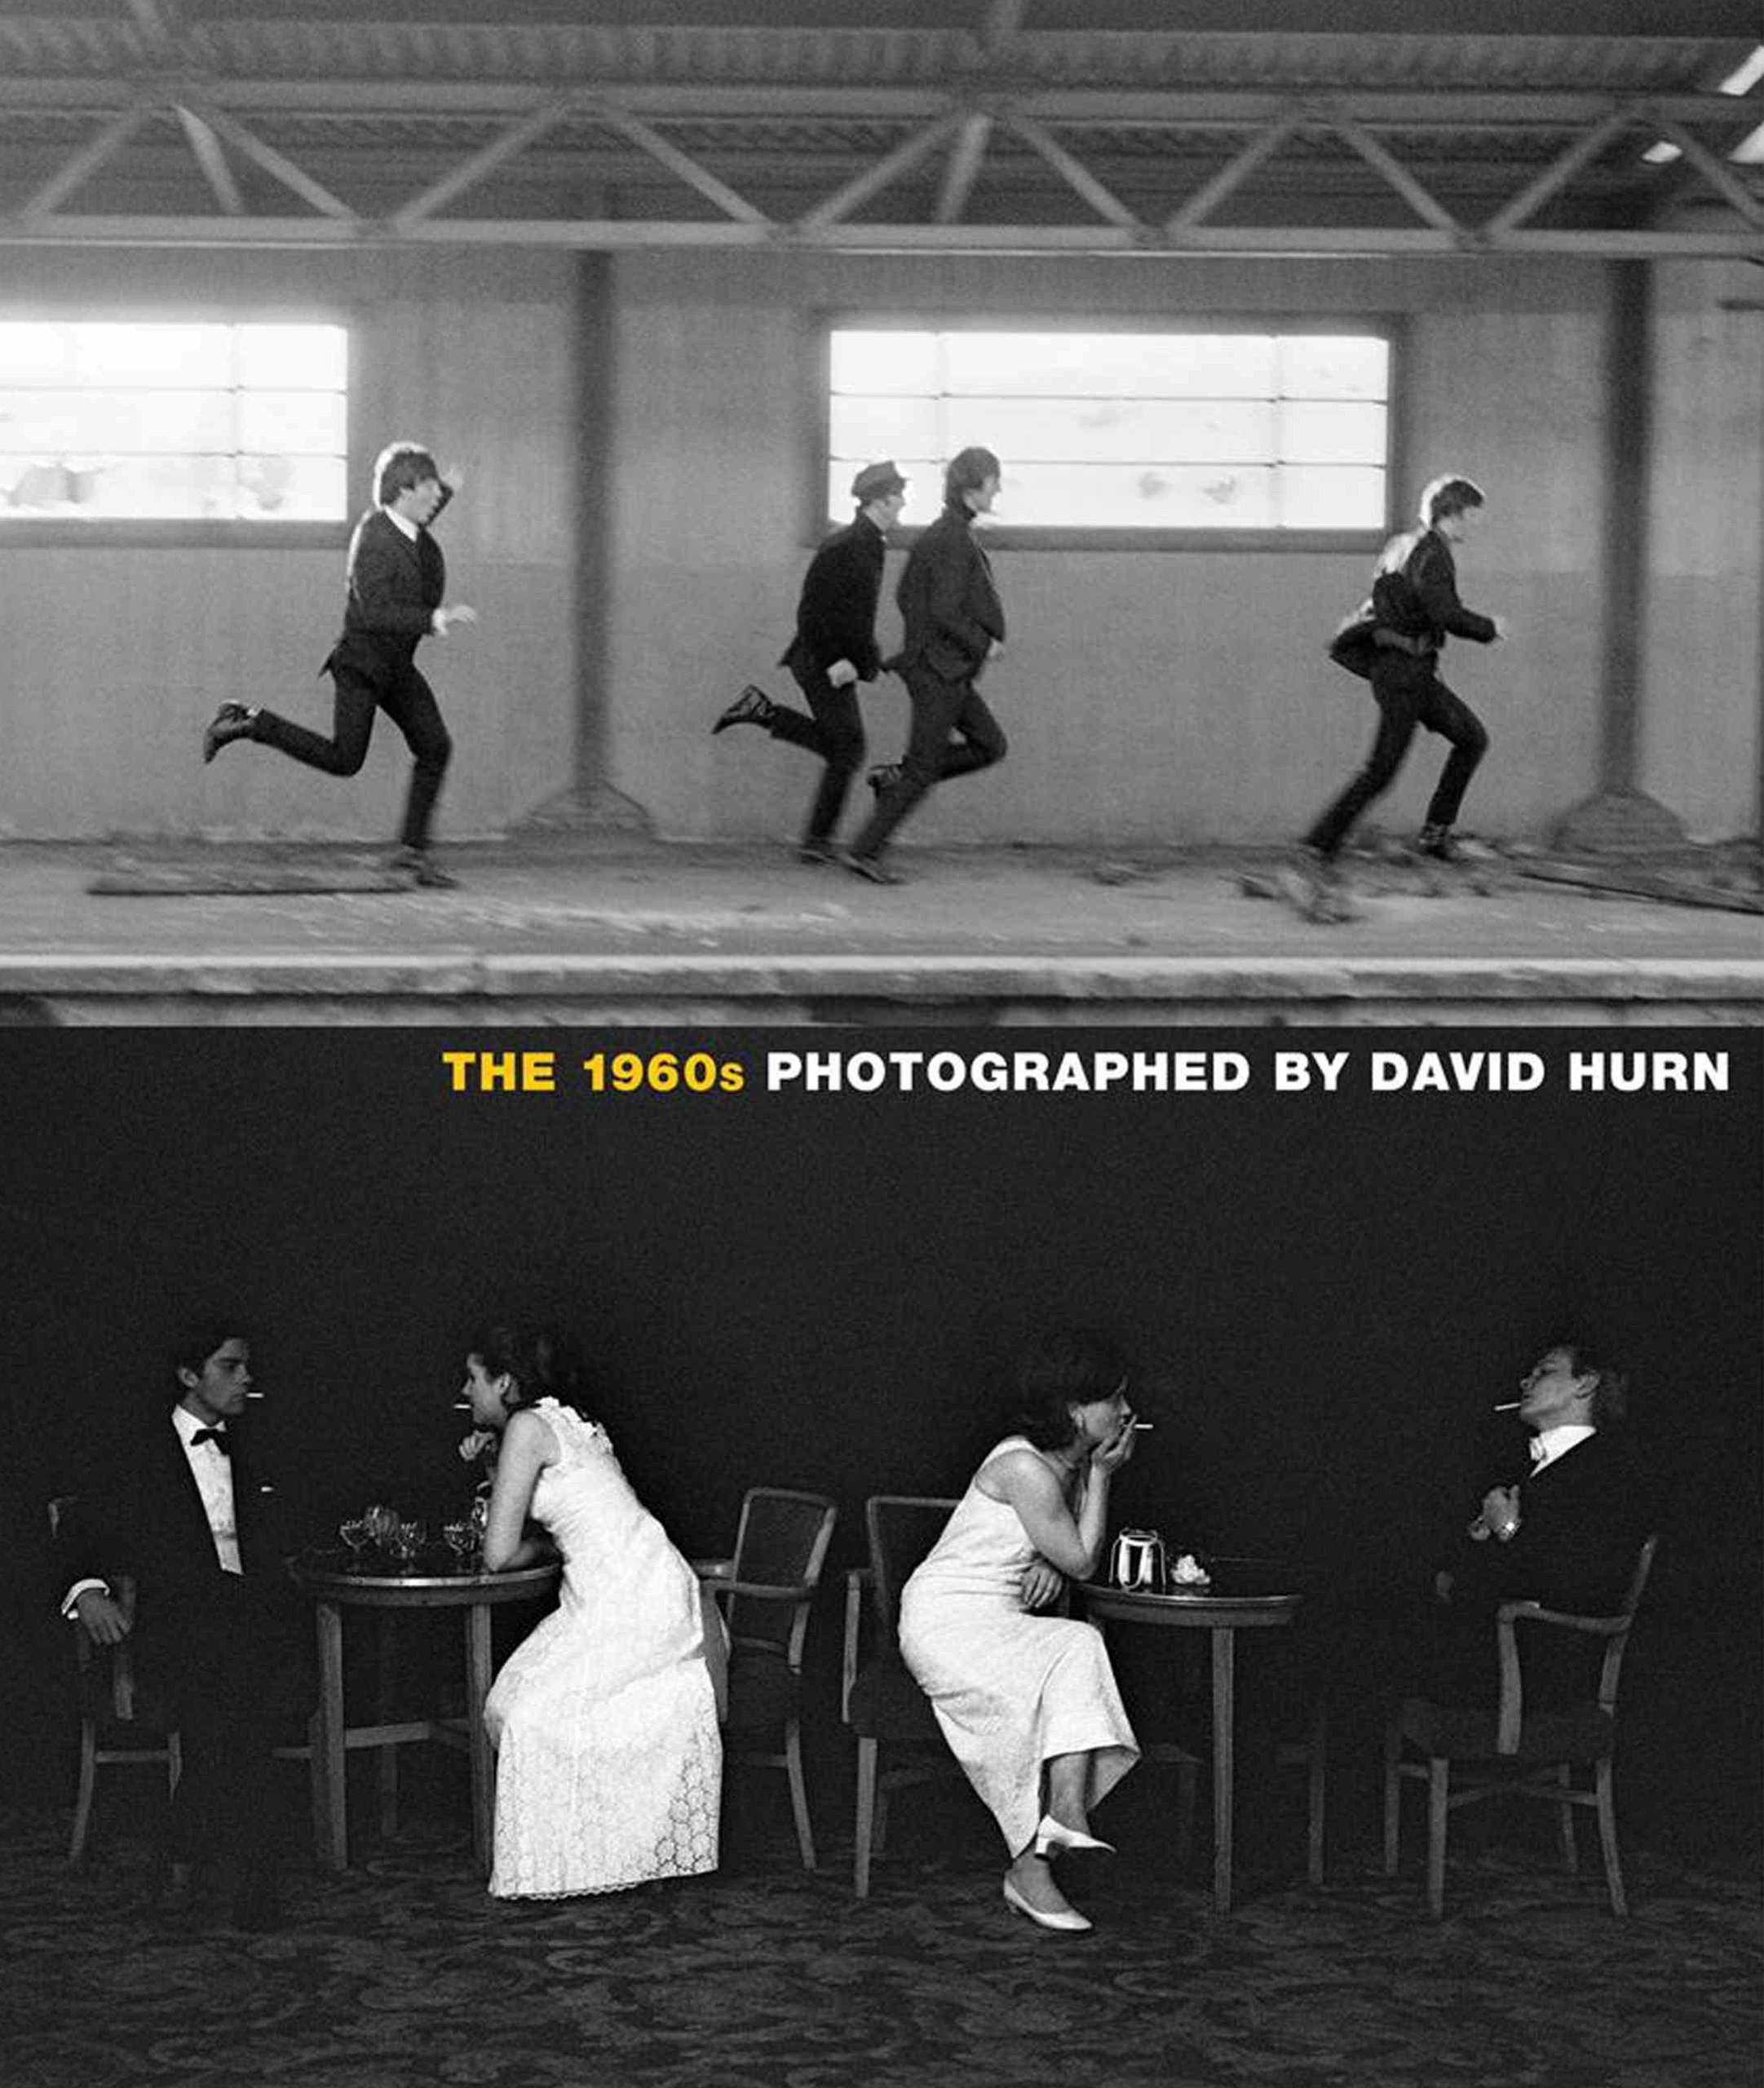 1960s: Photographed by David Hurn